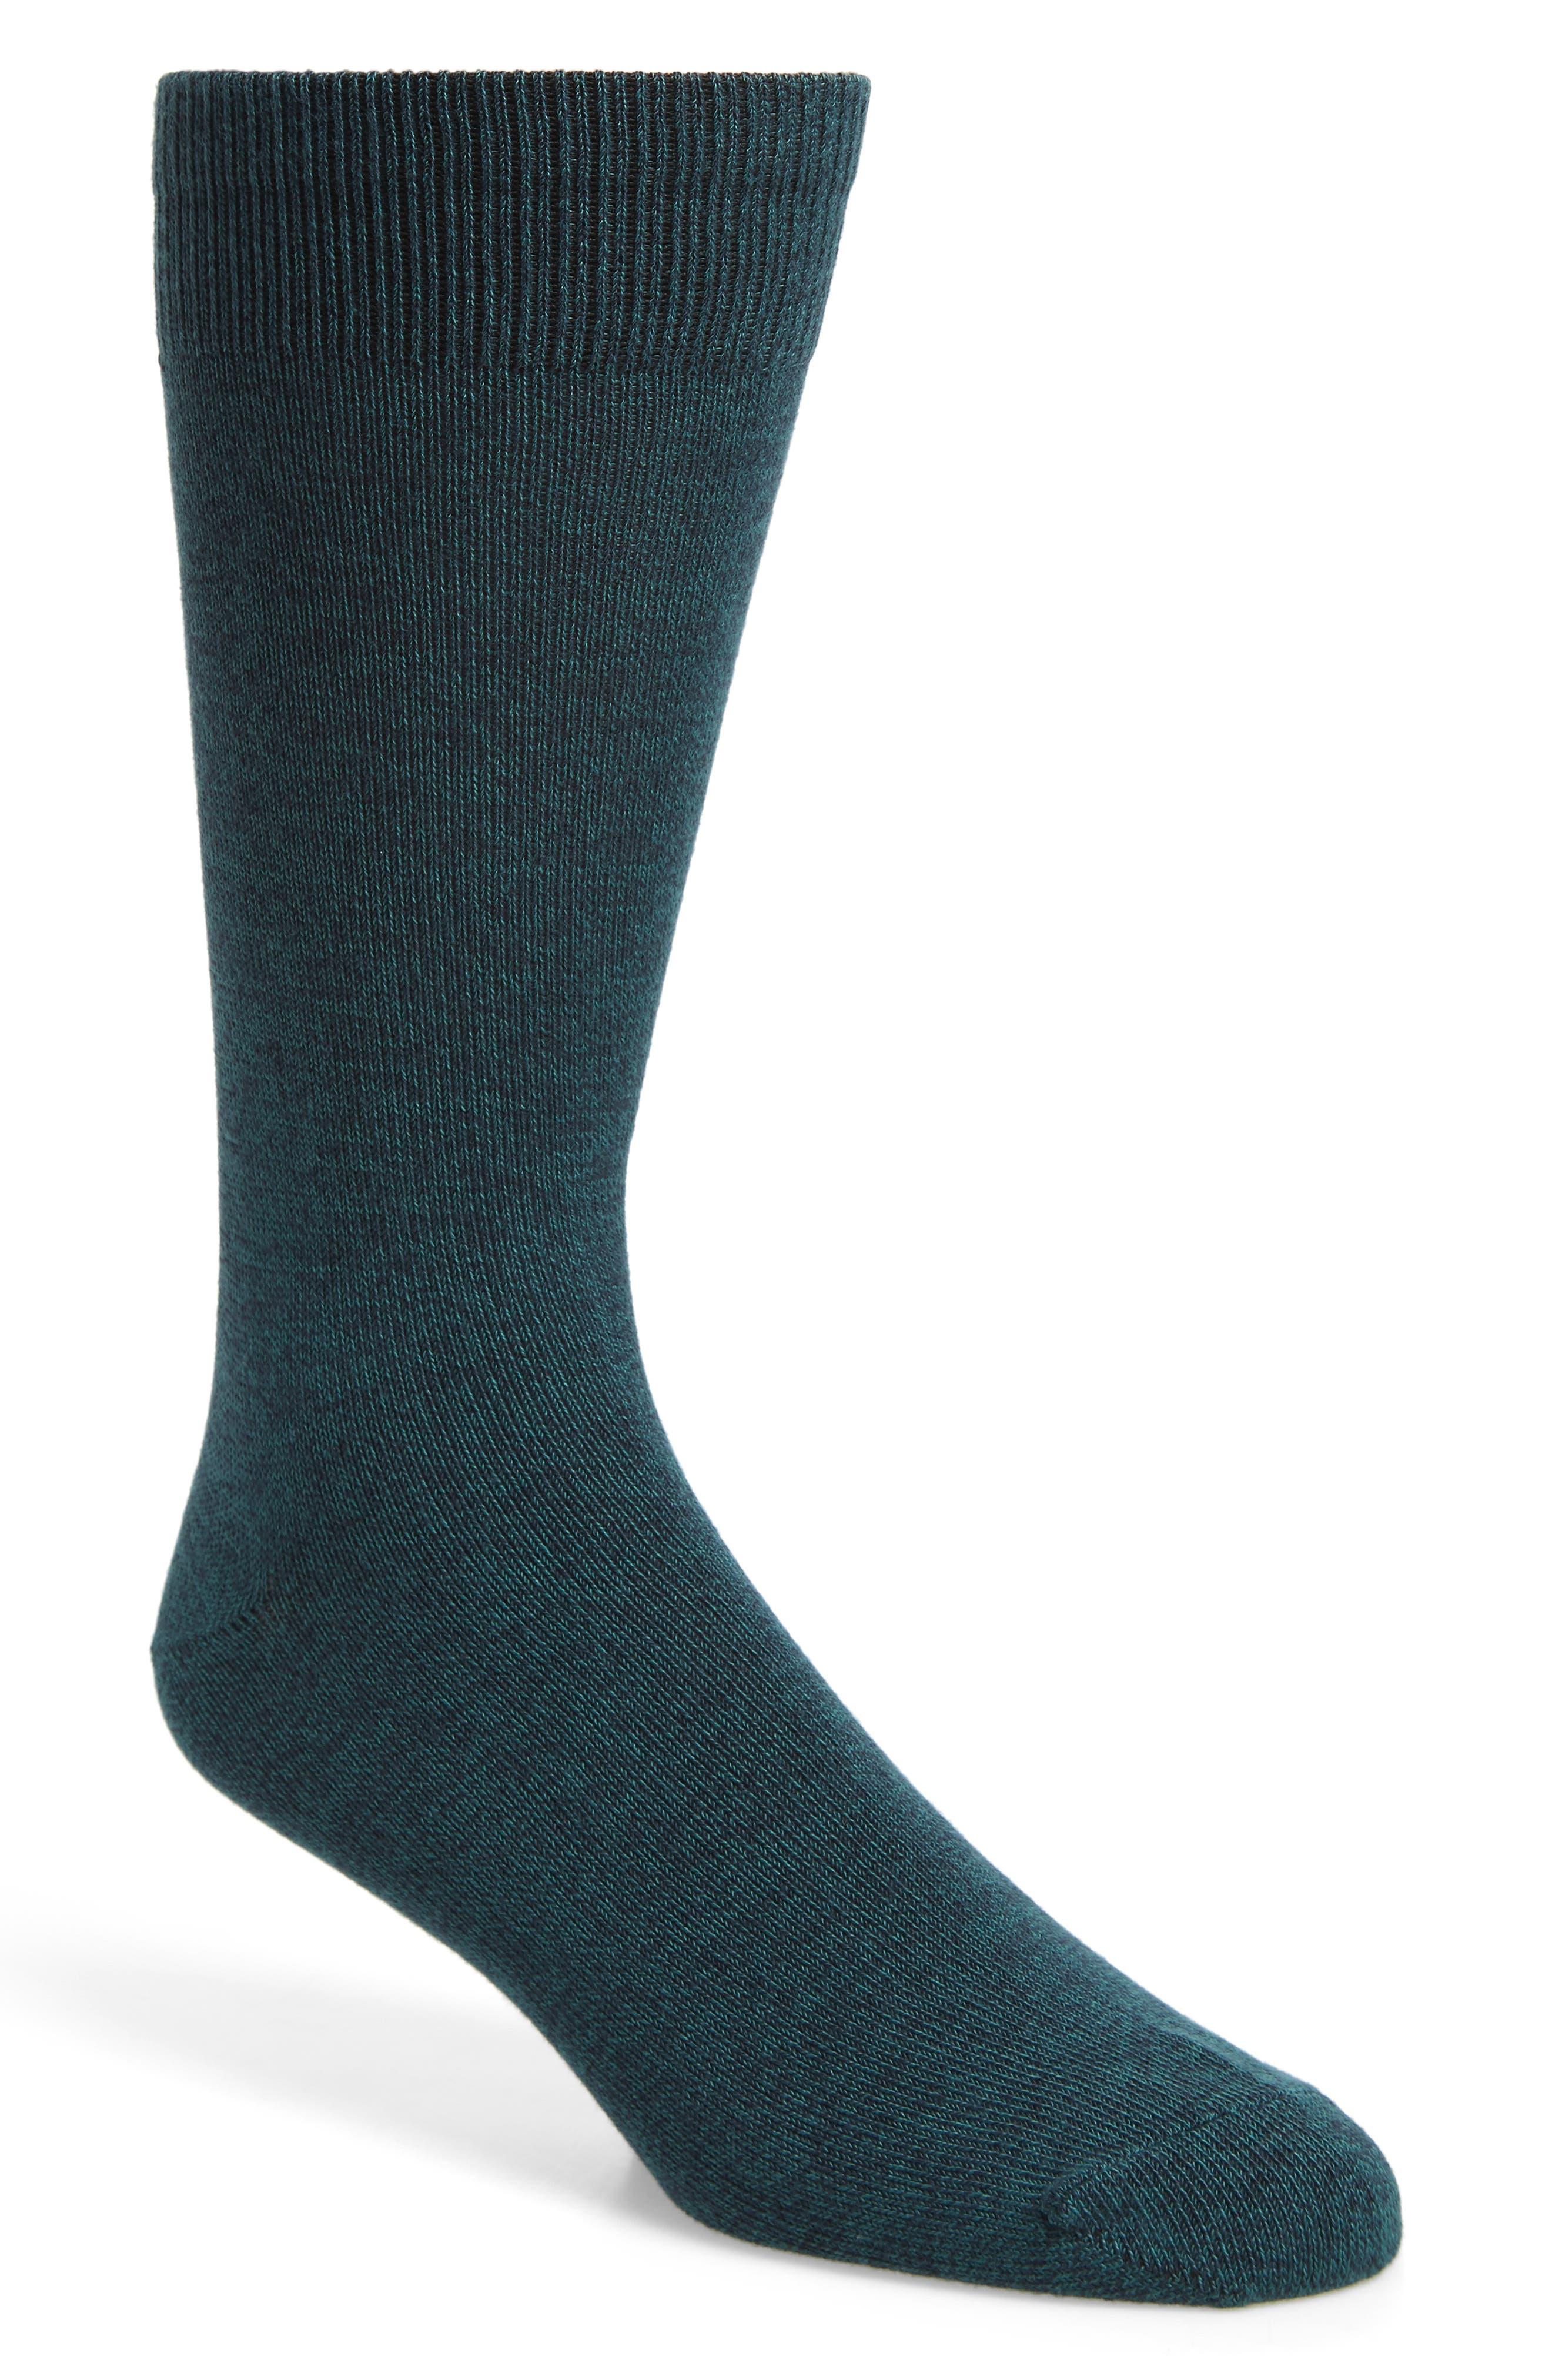 Ultrasoft Solid Socks,                         Main,                         color, GREEN BISTRO